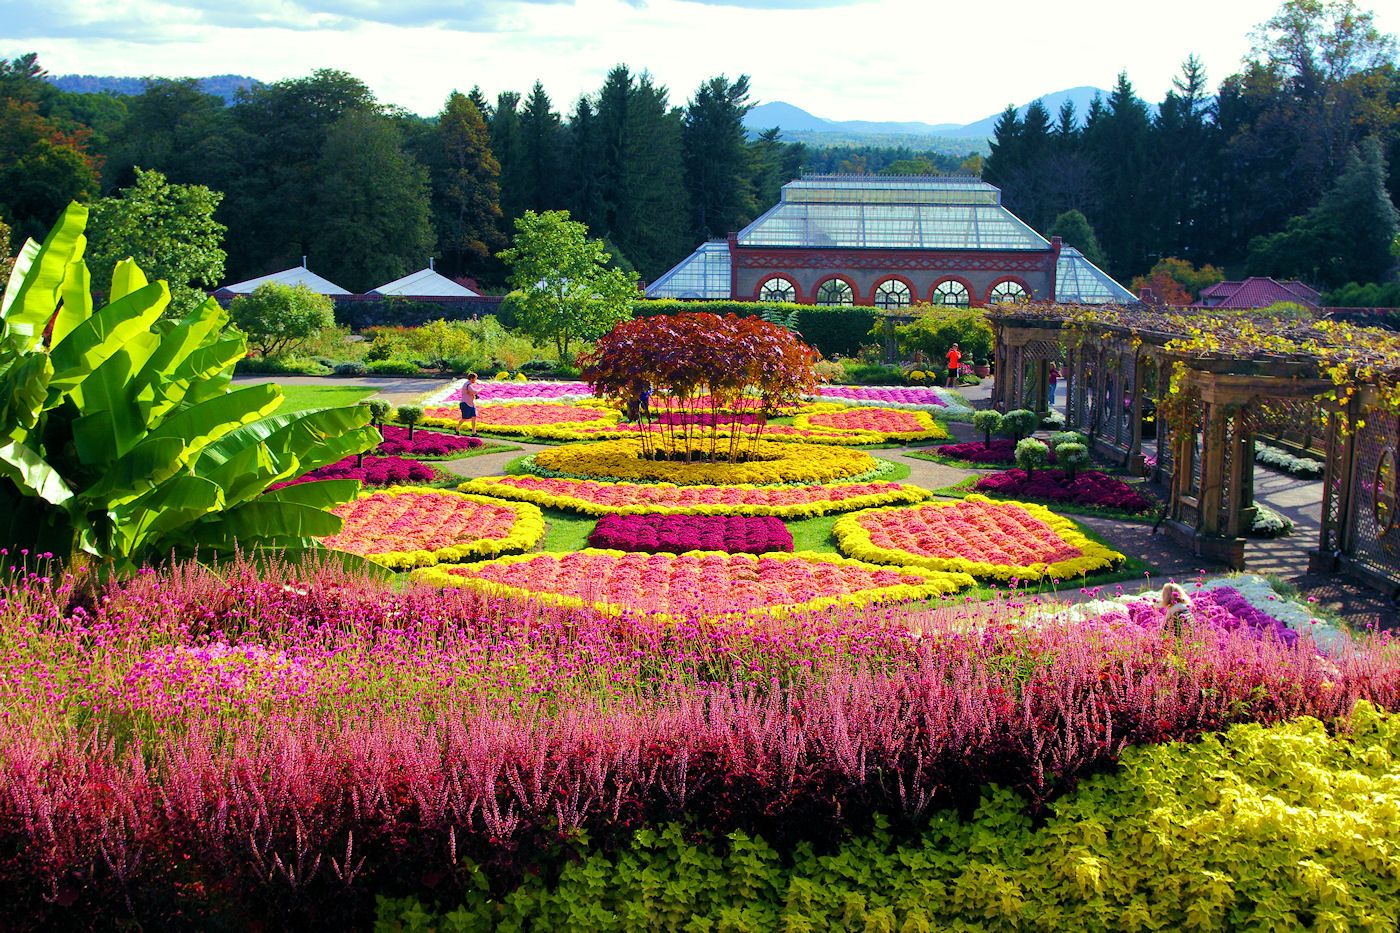 6ab4124eae91711d9a463e1be34624e8 - Best Time To Visit Biltmore Gardens